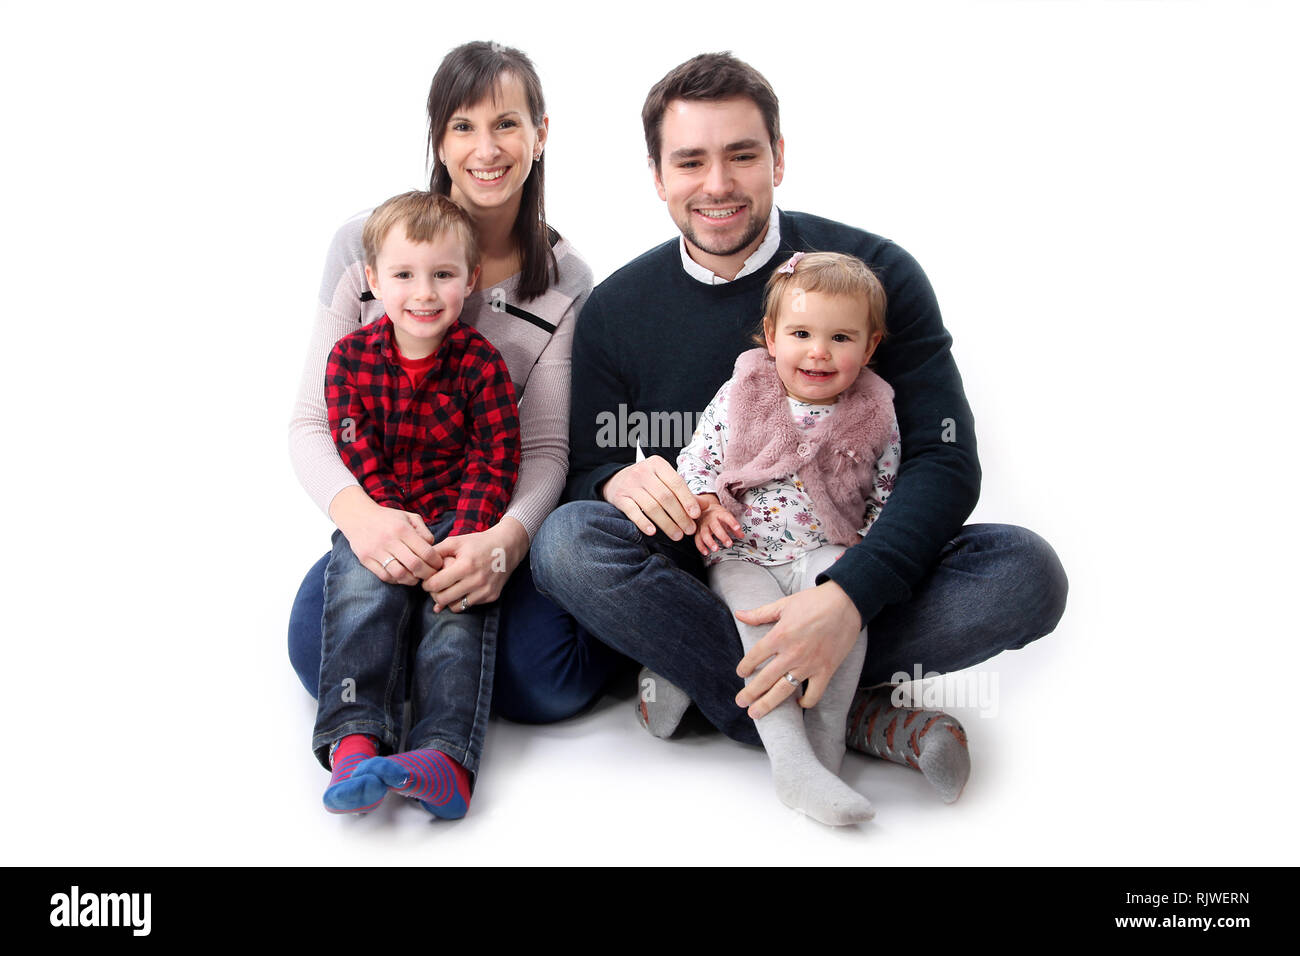 foster parents - Stock Image